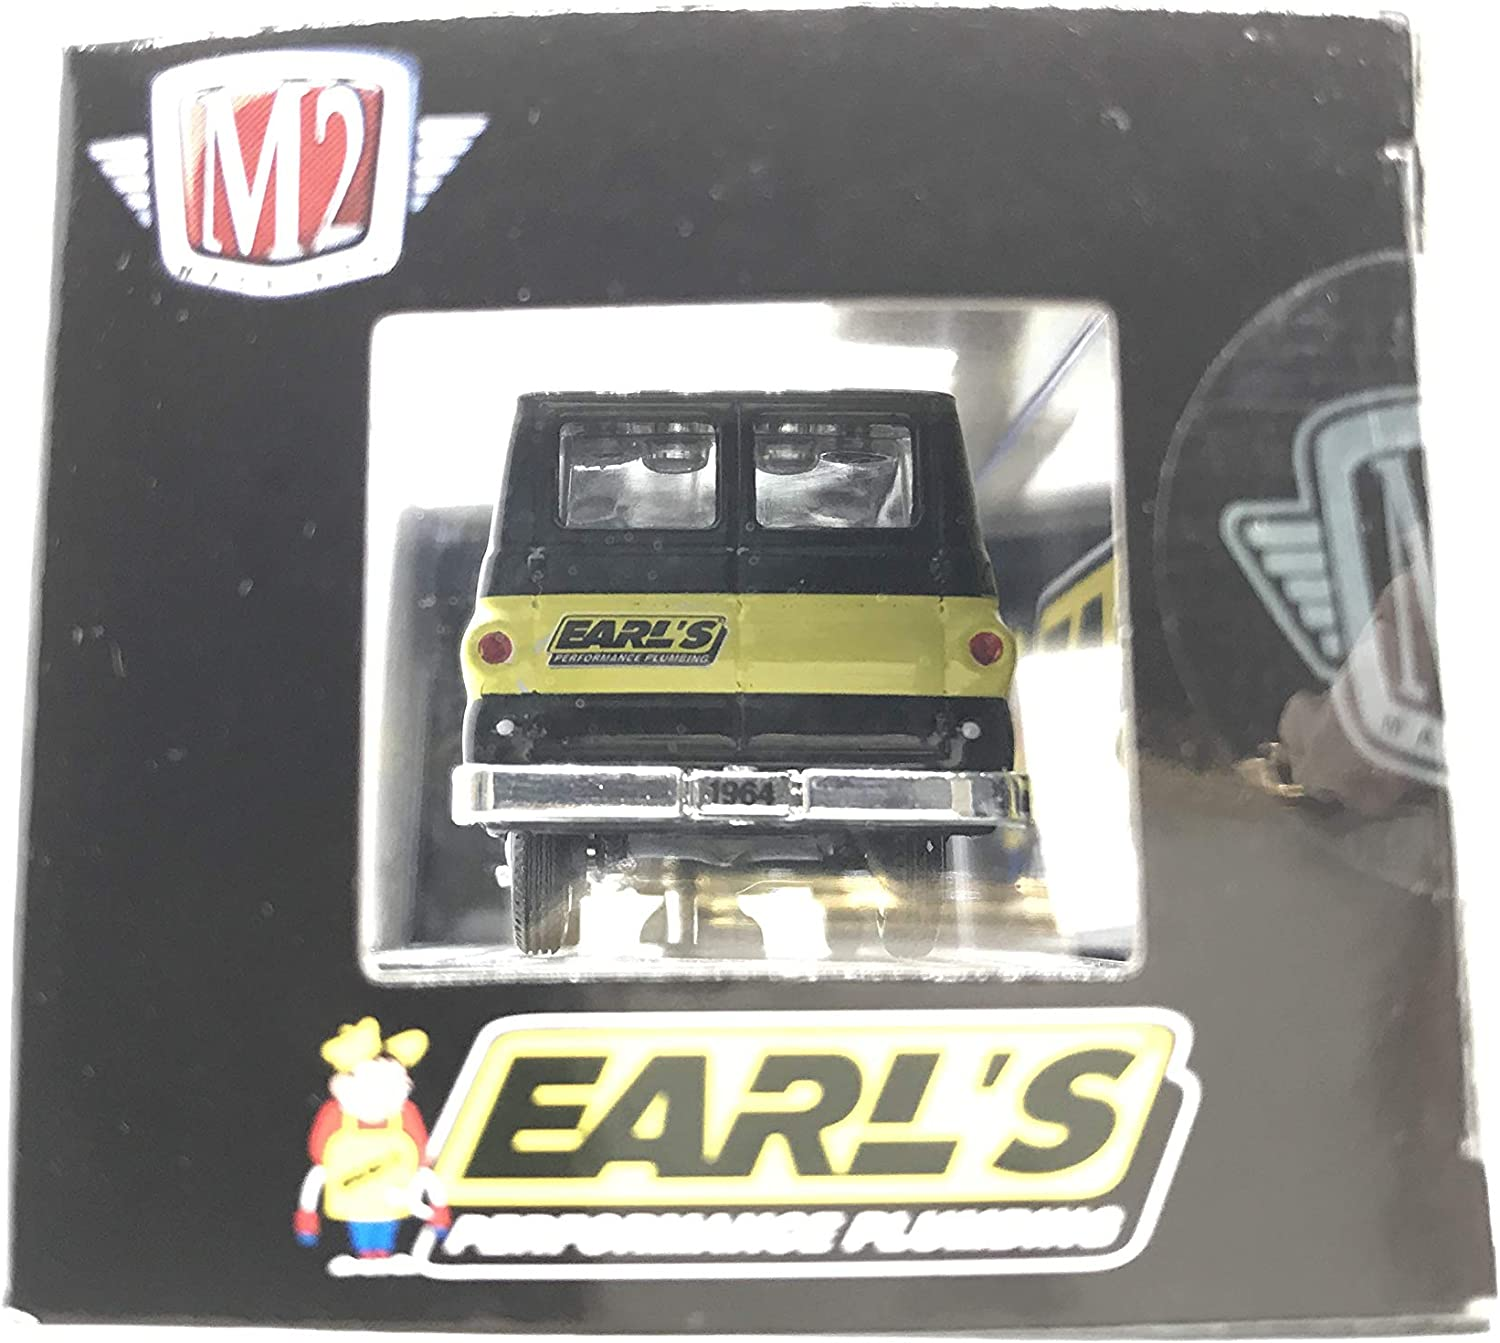 1 of 4875 M2 Machines by M2 Collectible Earls Performance Plumbing 1964 Dodge A100 Vision Van Curbside 1:64 Scale S72 19-64 Black//Yellow Details Like NO Other